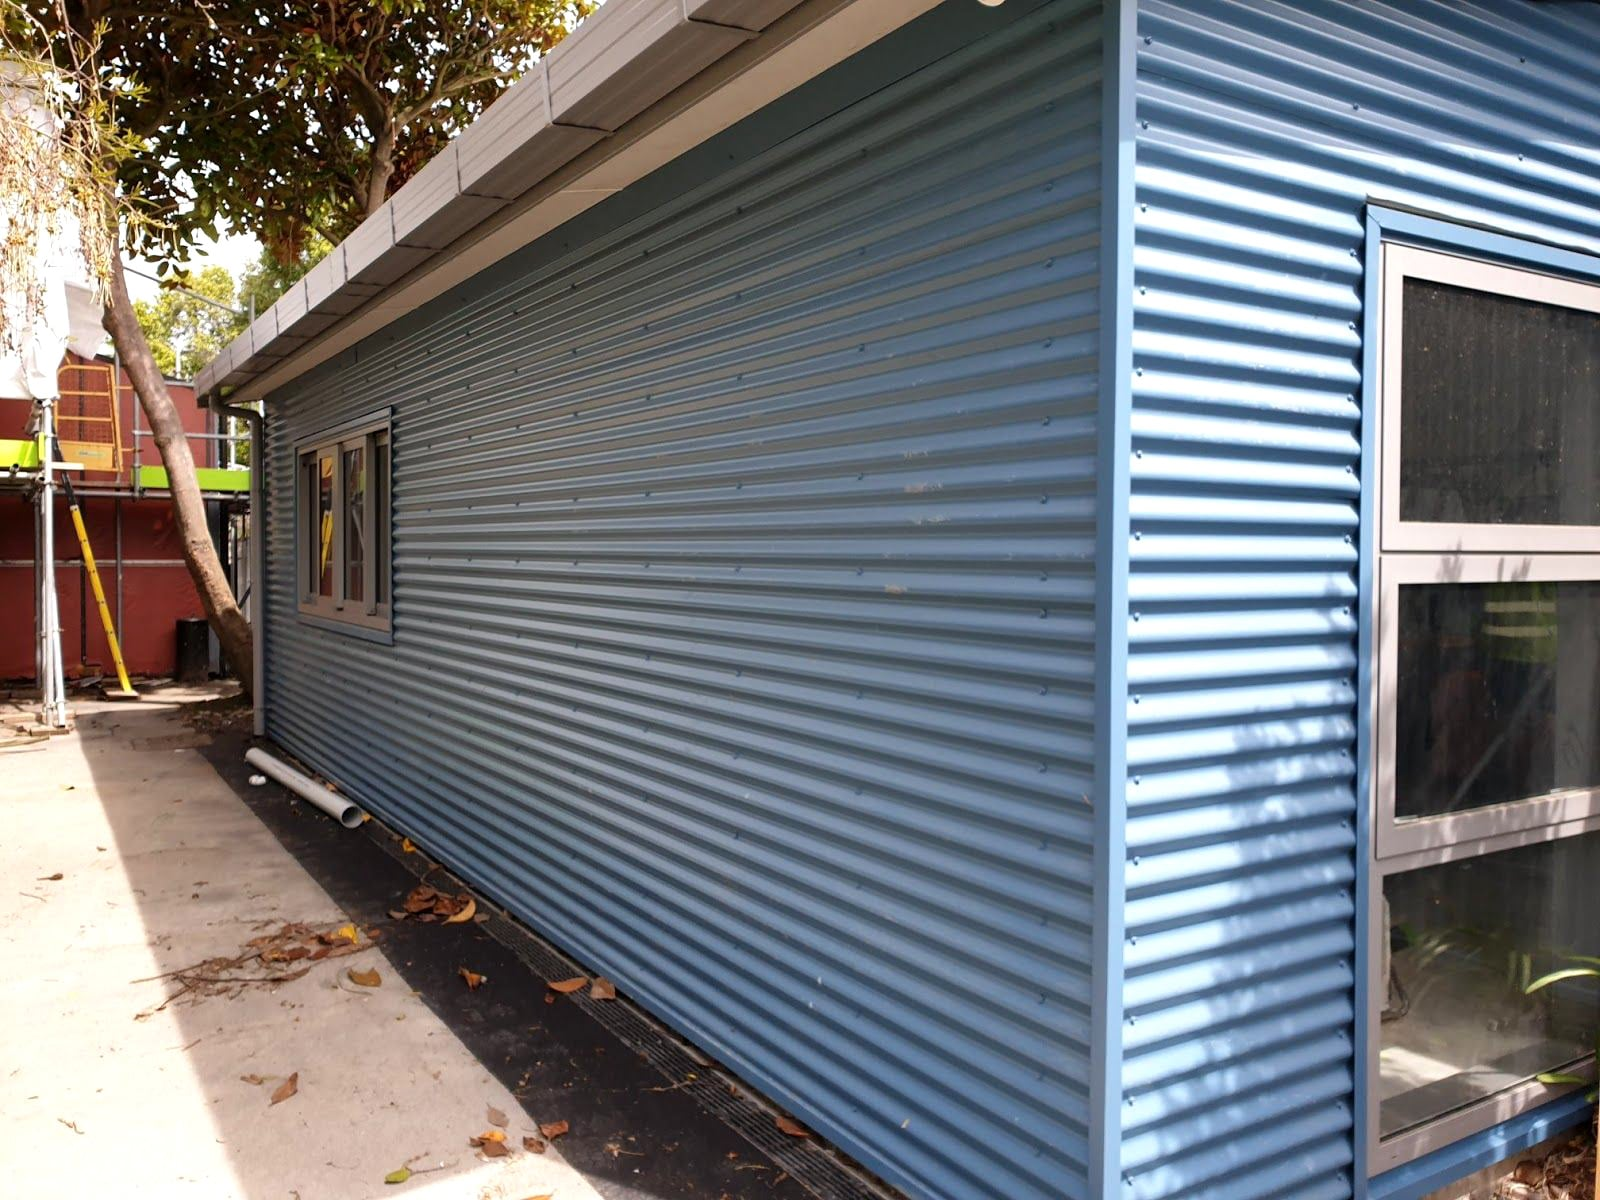 Traditional corrugated iron used as cladding